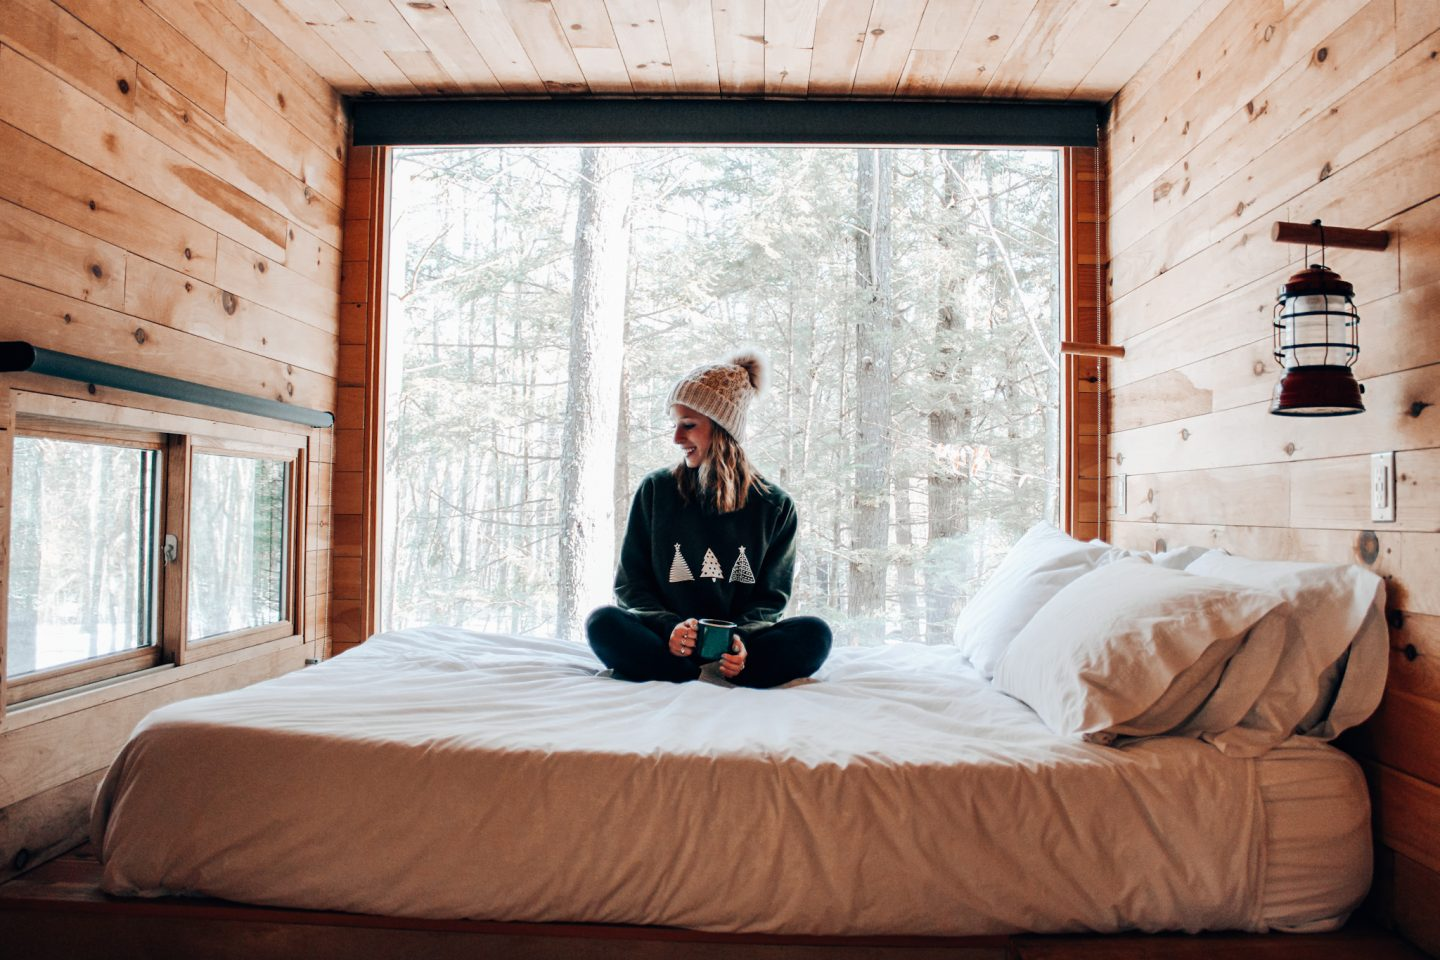 Dreamy wintery view out window from bed of Getaway House